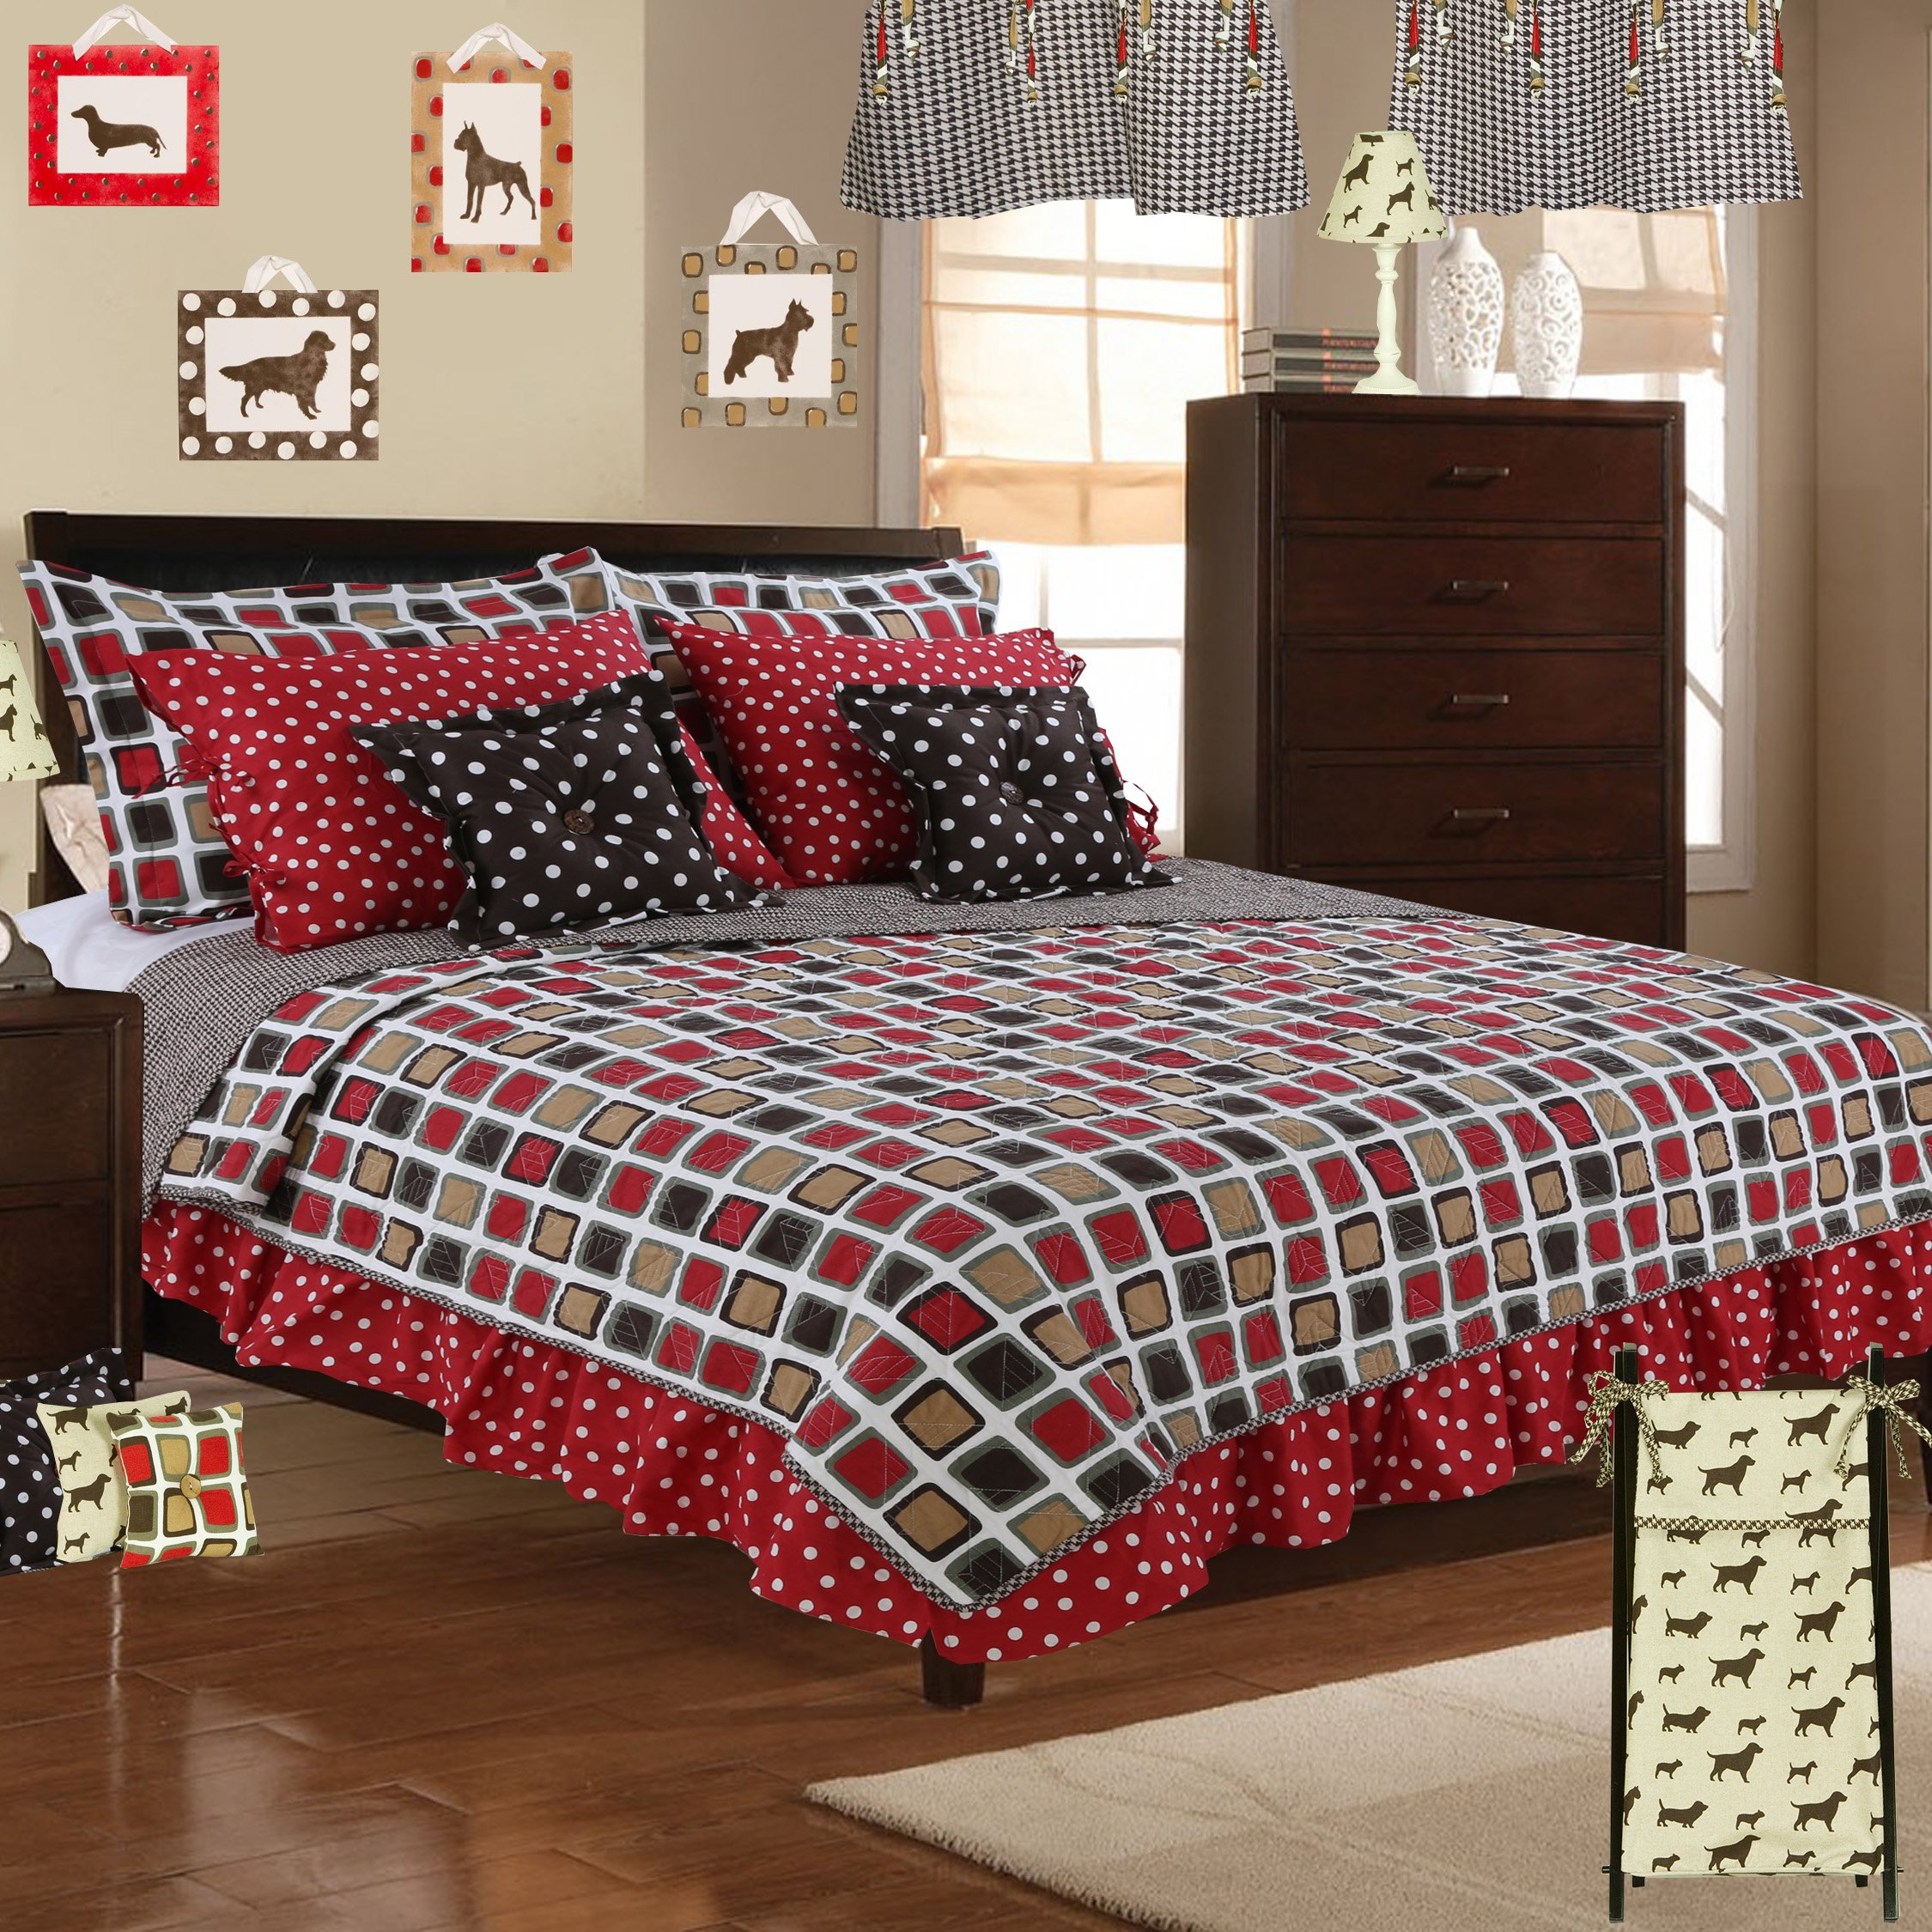 Cotton Tale Designs 100% Cotton Houndstooth Red Brown Tan Cream Square Geometric & Houndstooth Twin 5 Piece Reversible Quilt Bedding Set - Unisex Gender Neutral Boy/Girl